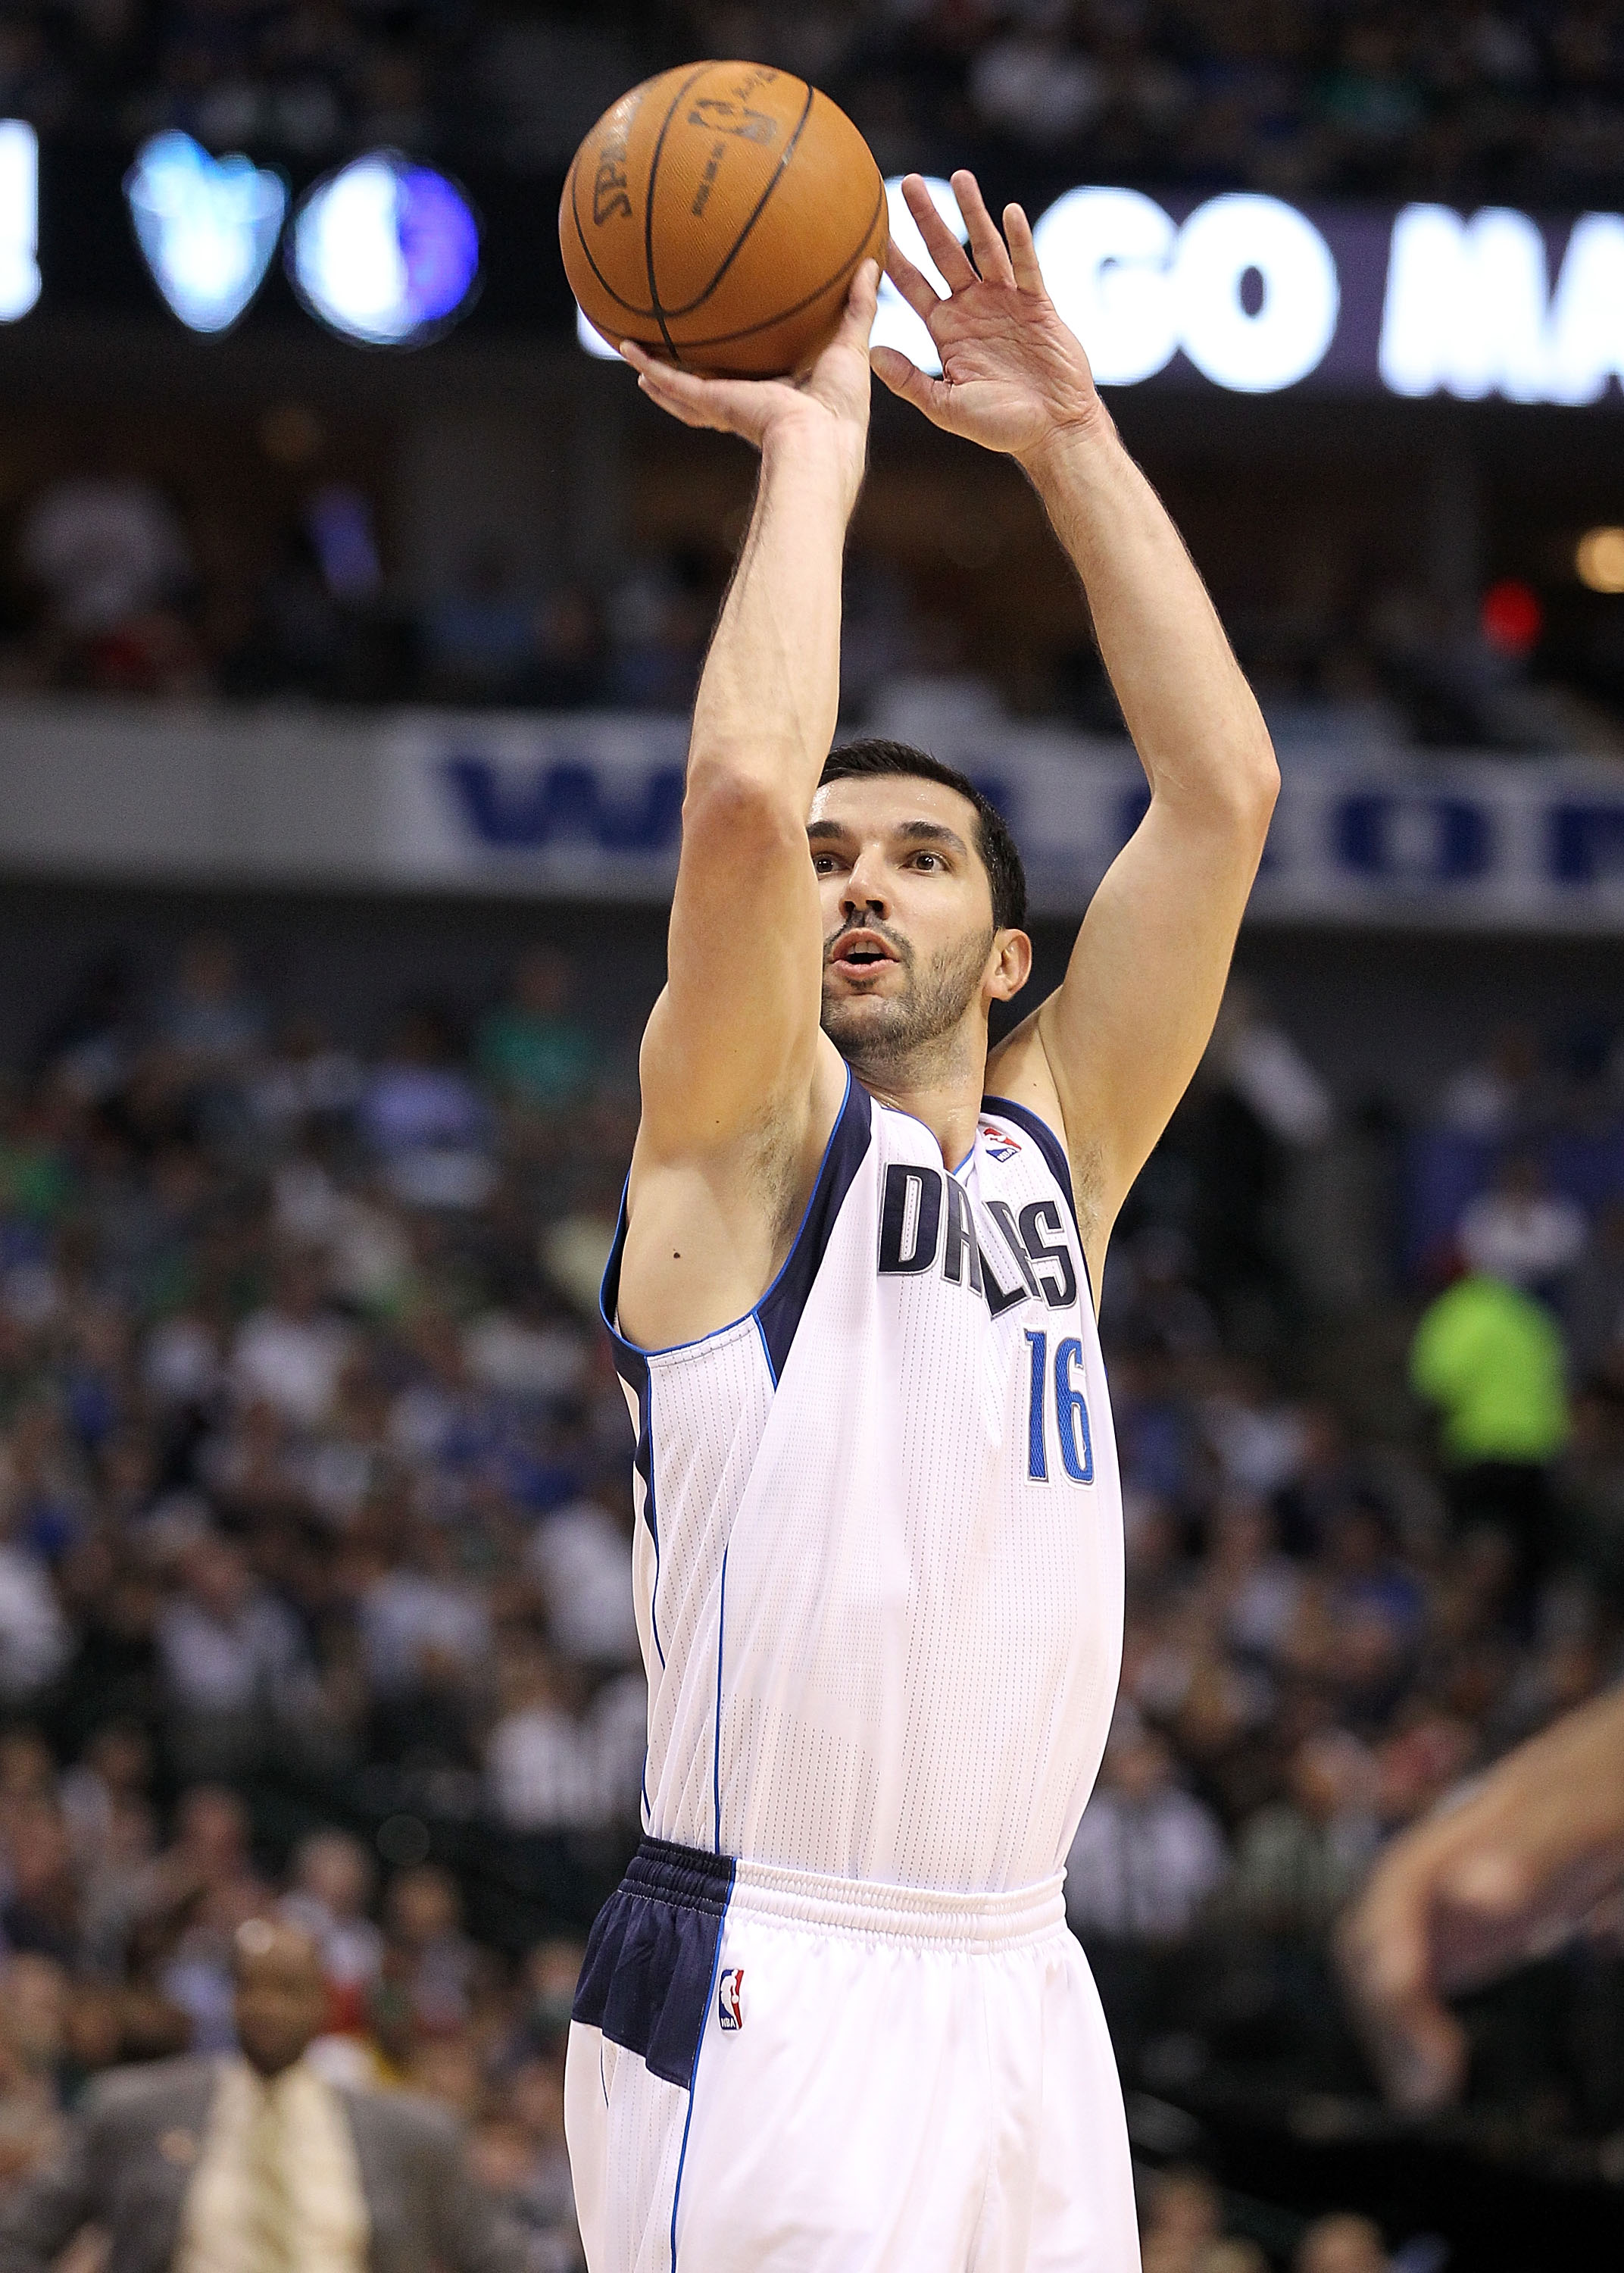 DALLAS, TX - APRIL 19:  Guard Peja Stojakovic #16 of the Dallas Mavericks makes a shot against the Portland Trail Blazers in Game Two of the Western Conference Quarterfinals during the 2011 NBA Playoffs on April 19, 2011 at American Airlines Center in Dal